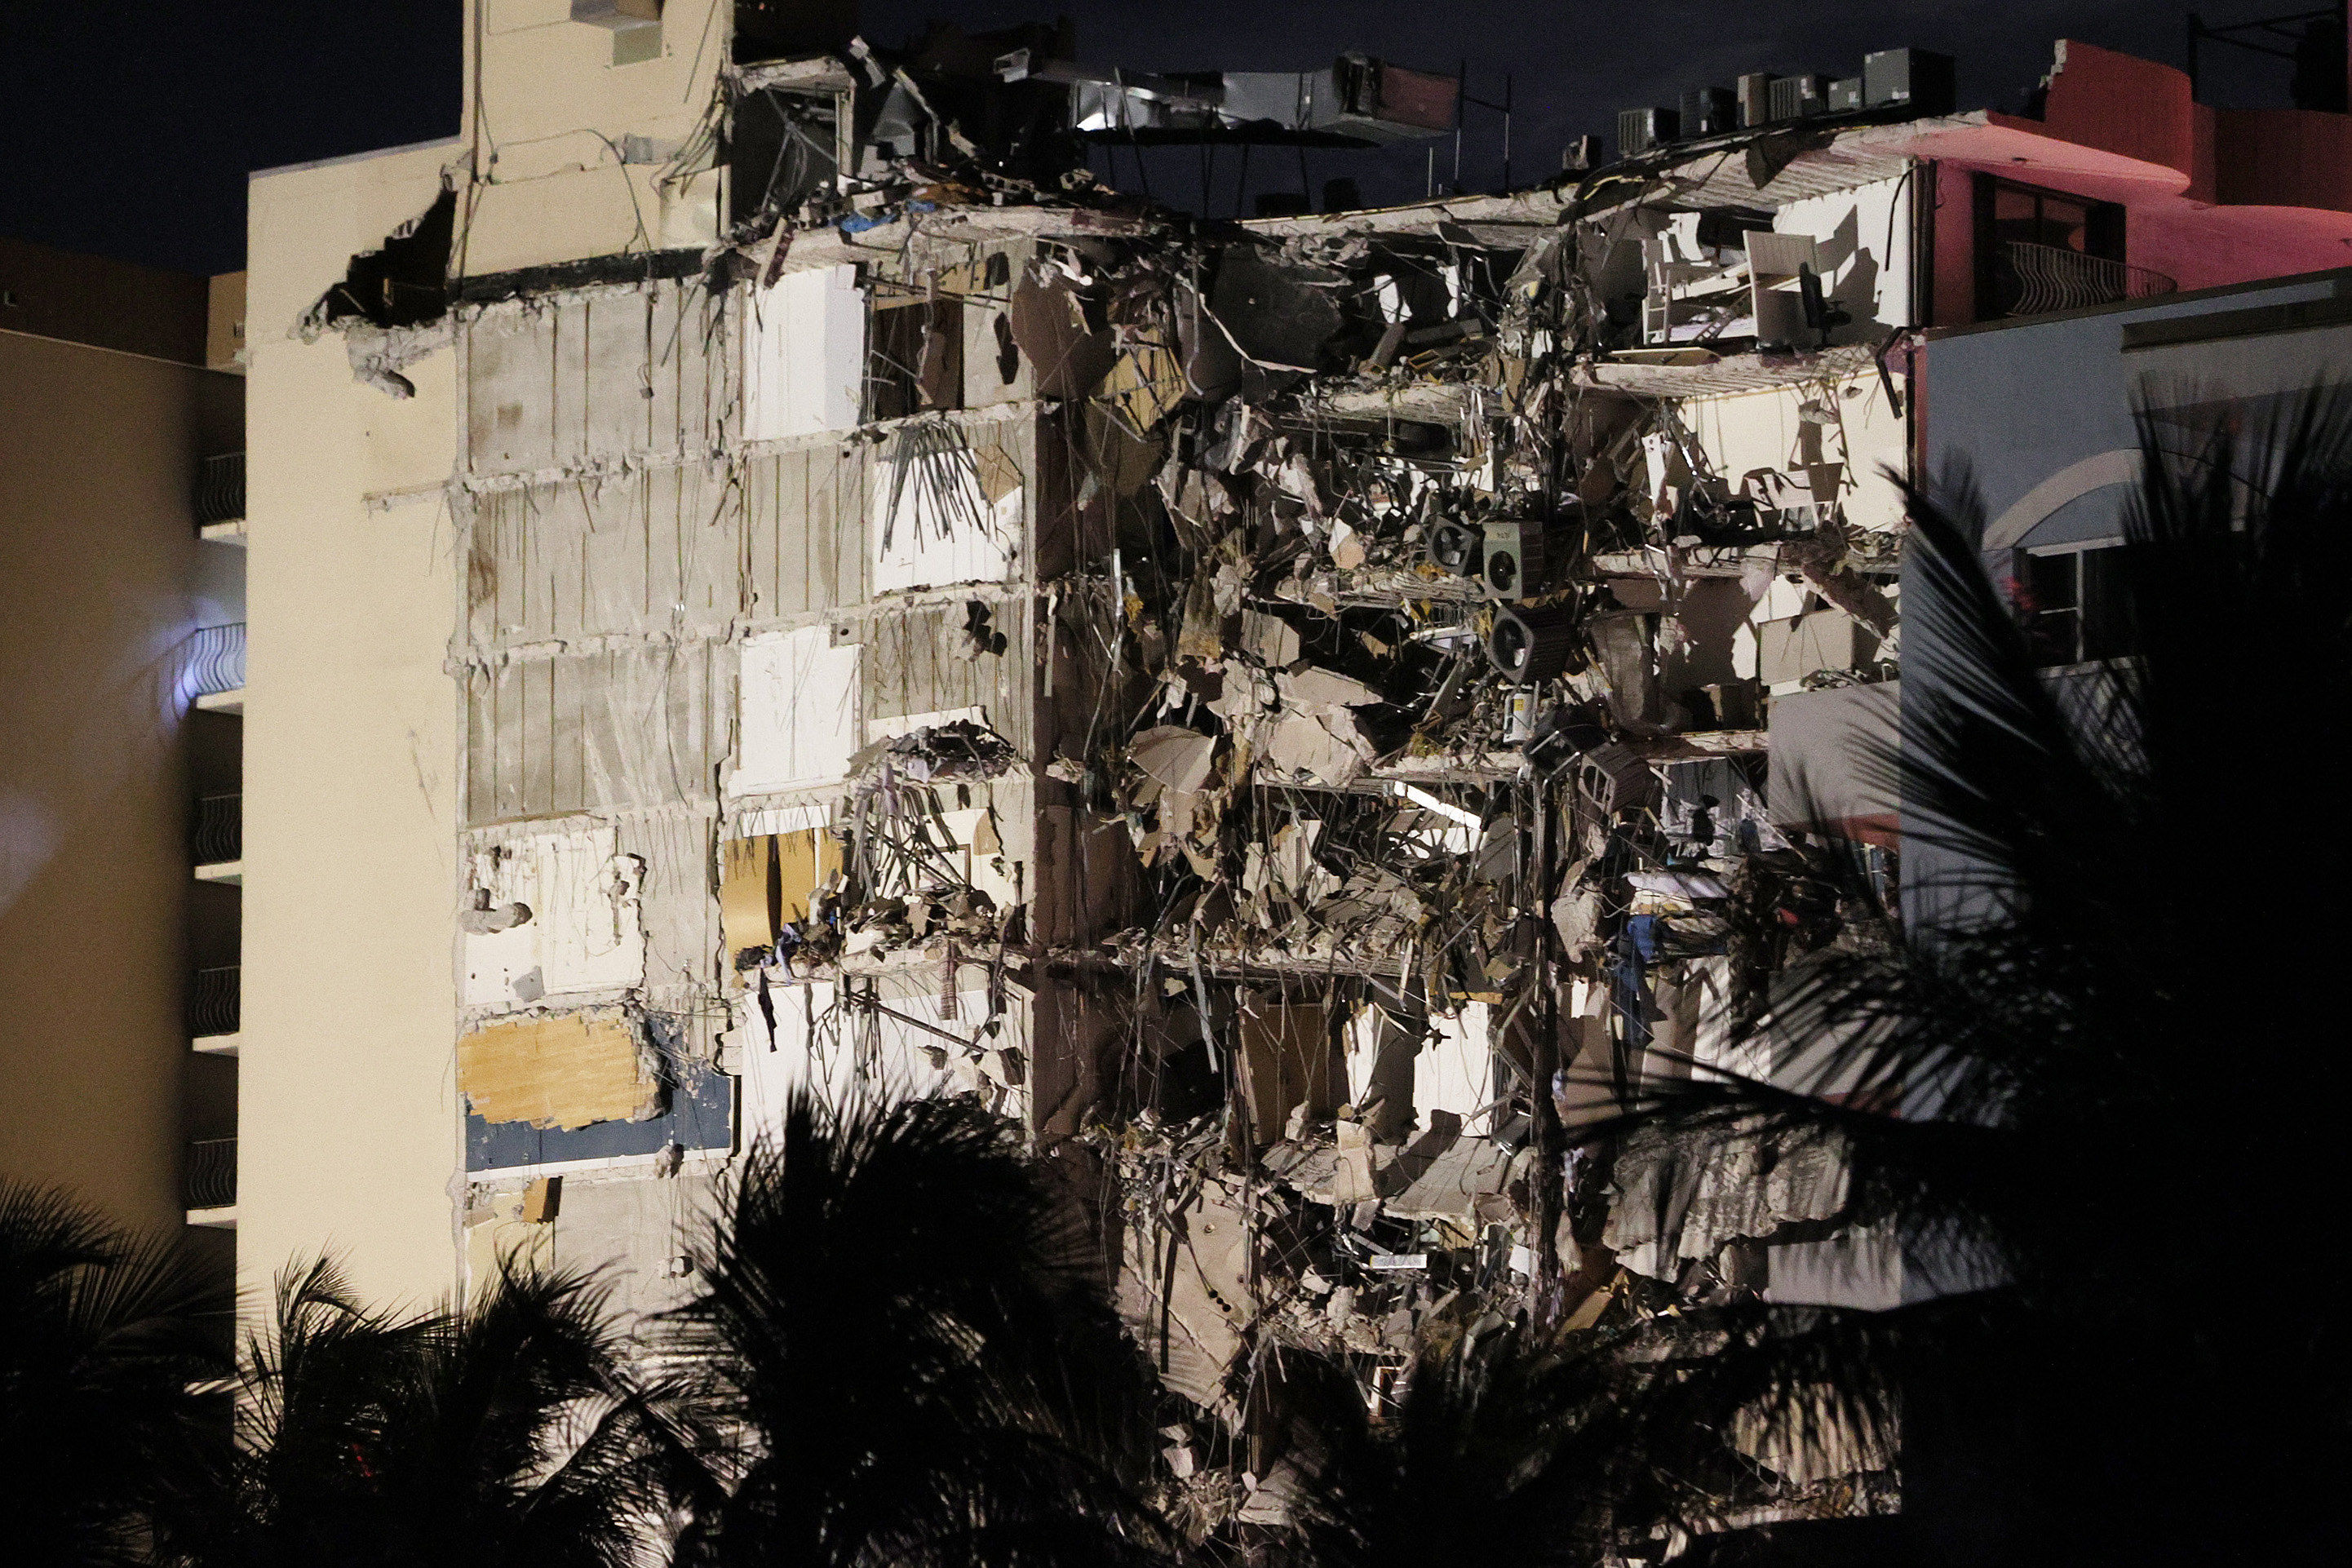 A side view of the partially collapsed building at night, with palm trees in the front